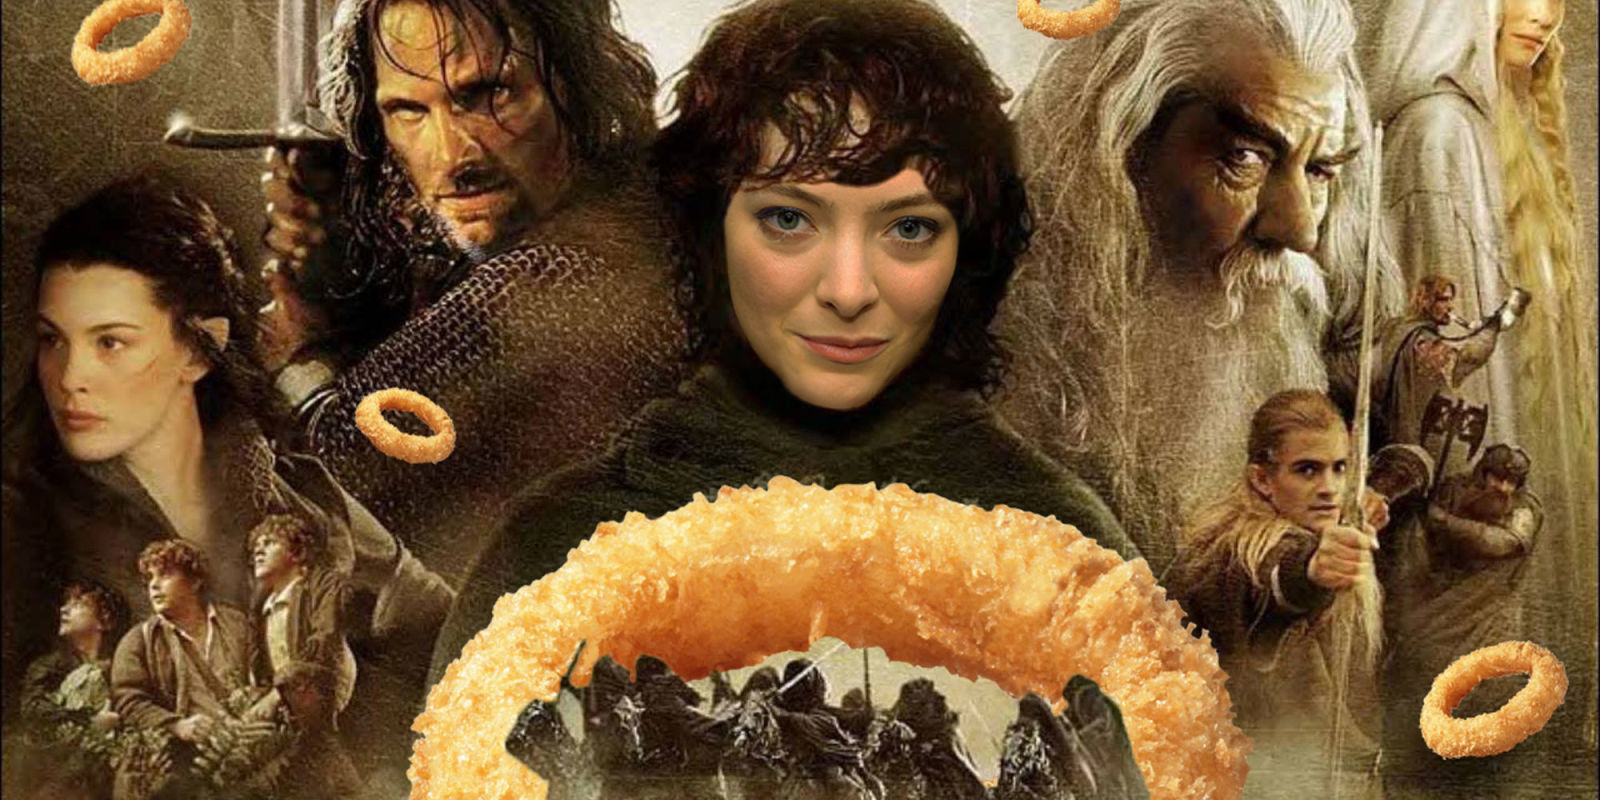 Lorde unmasked as owner of onion ring rating Instagram